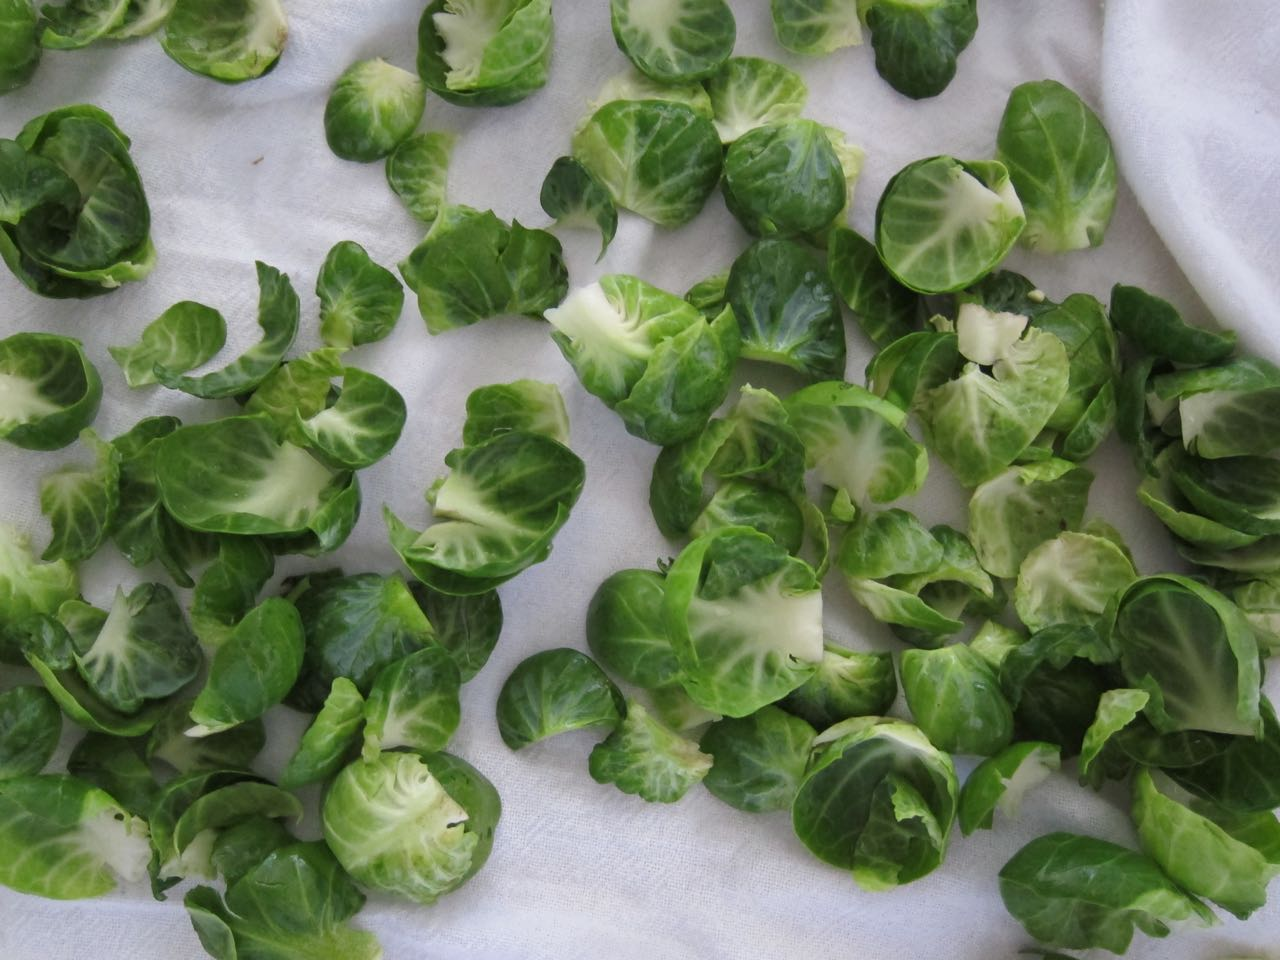 Brussels Sprout Leaves